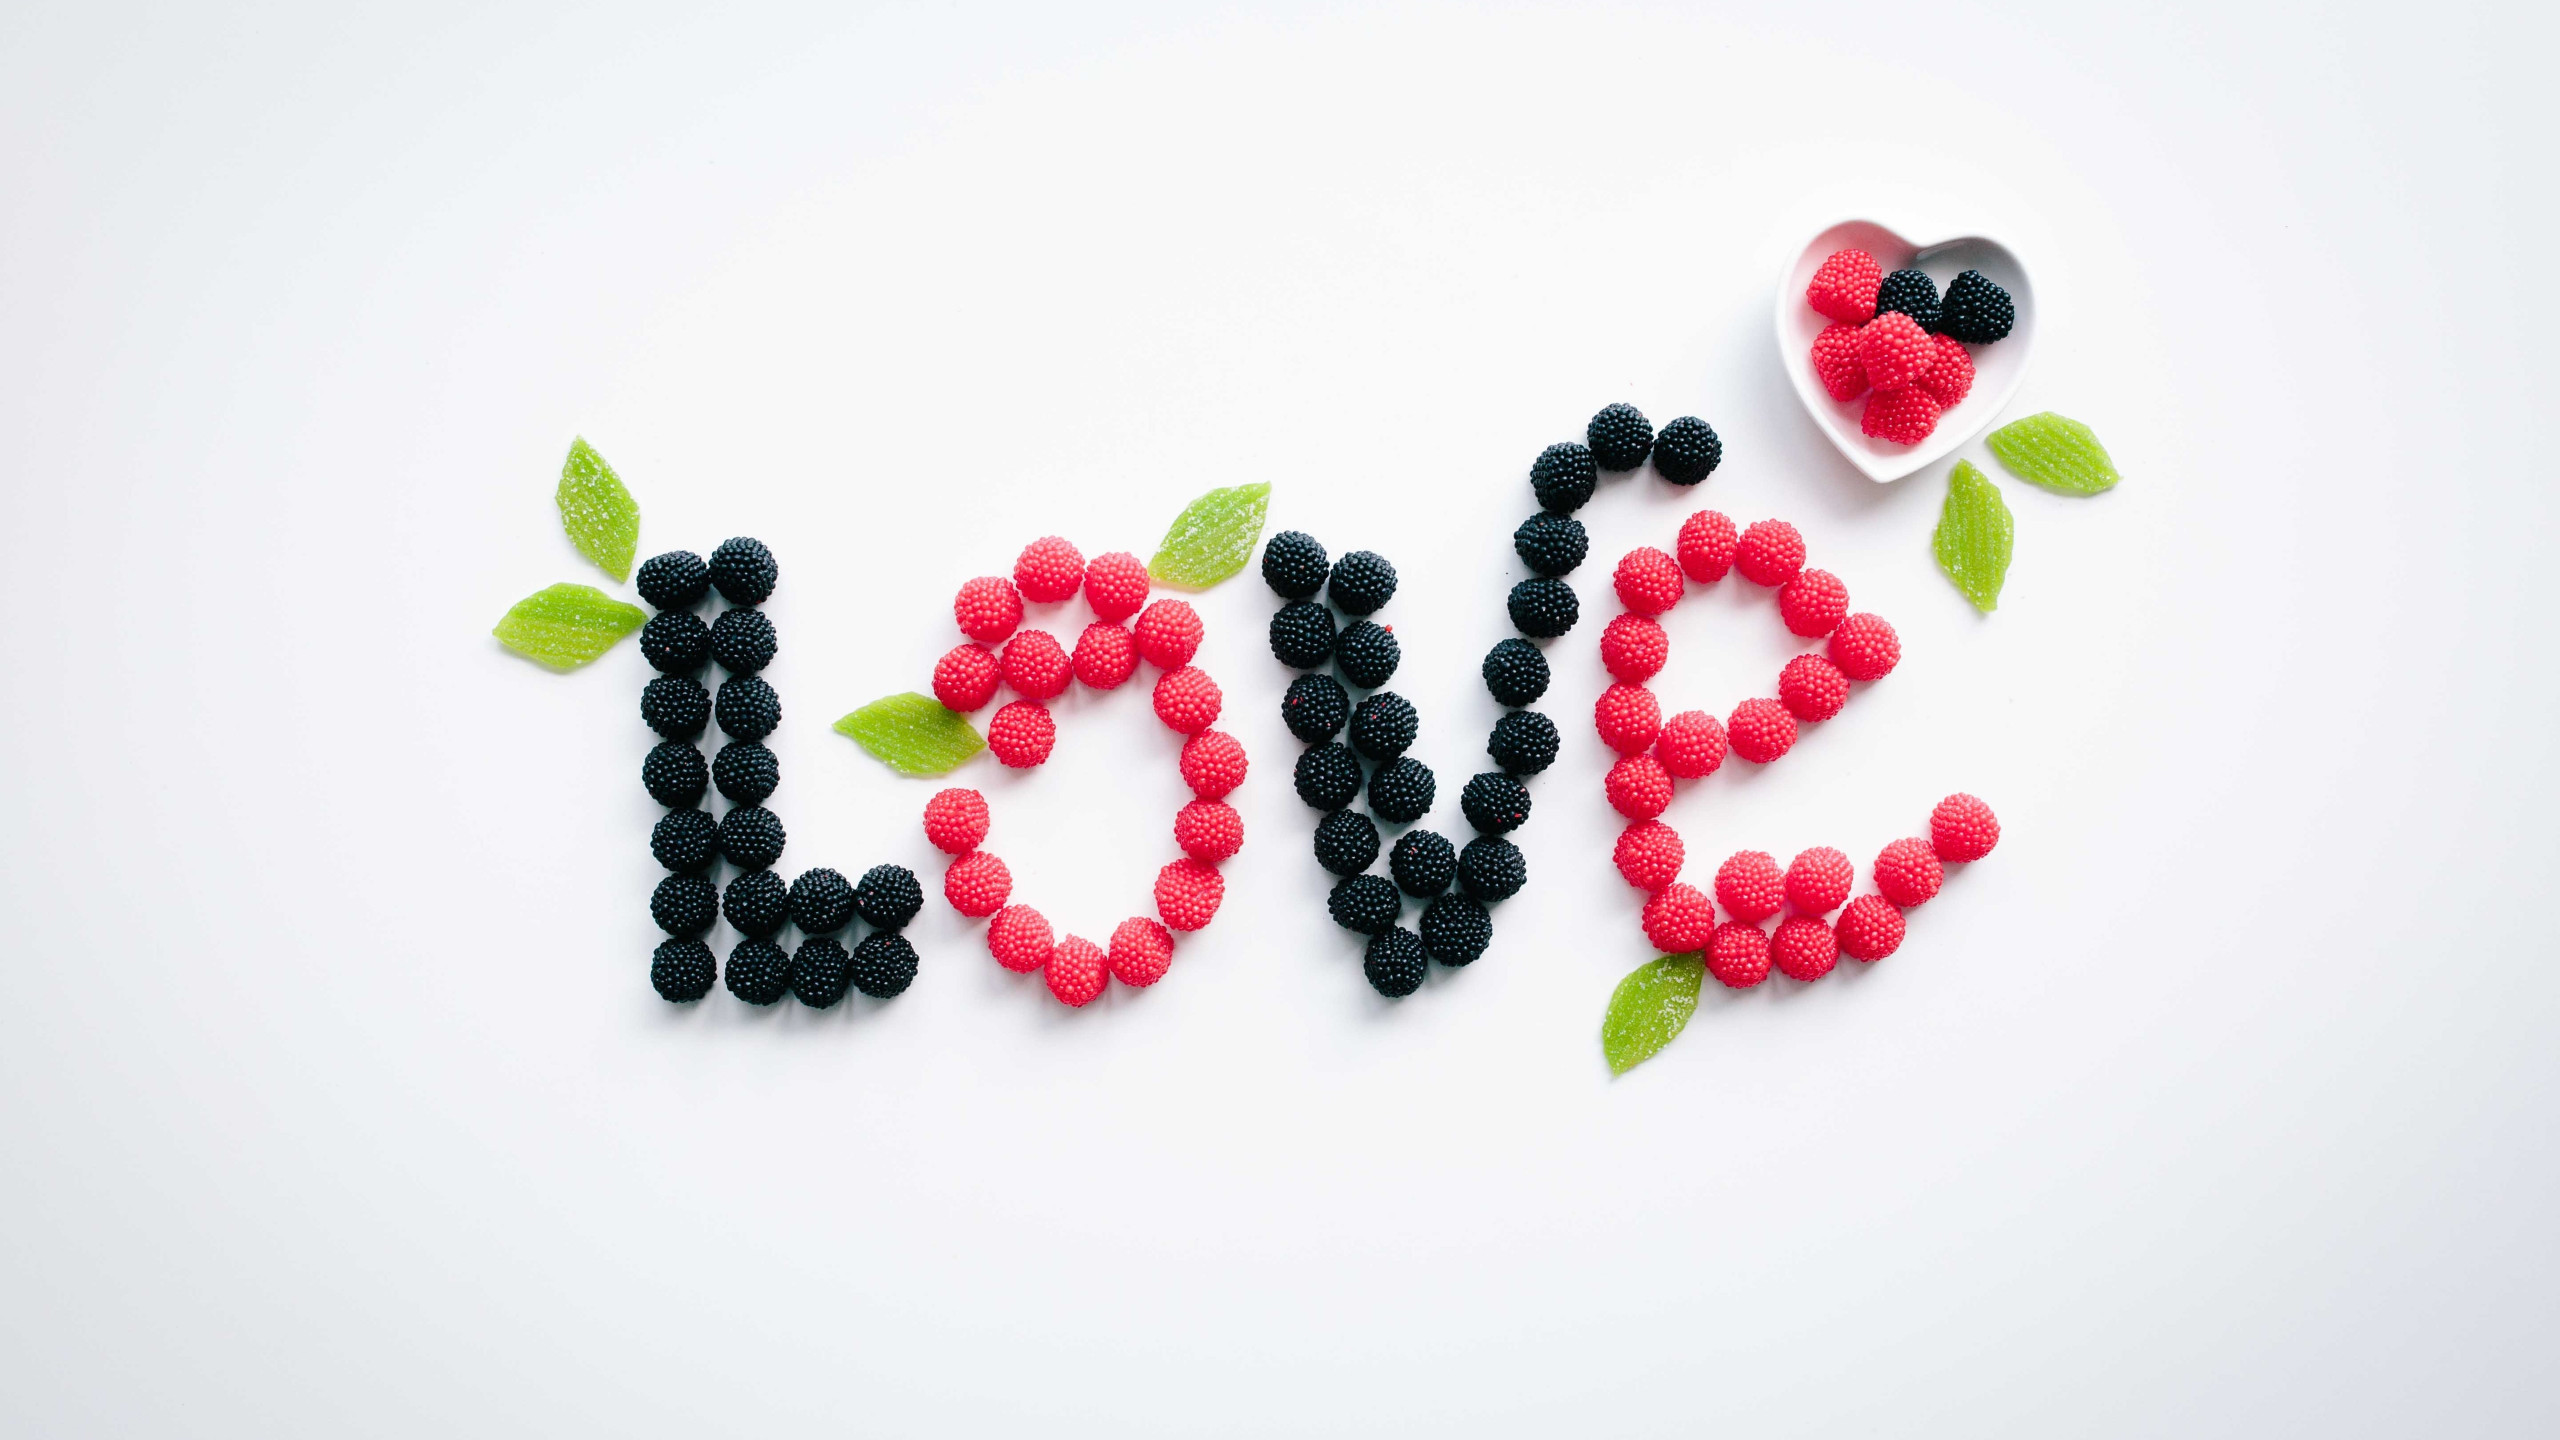 Love message with fruits | 2560x1440 wallpaper